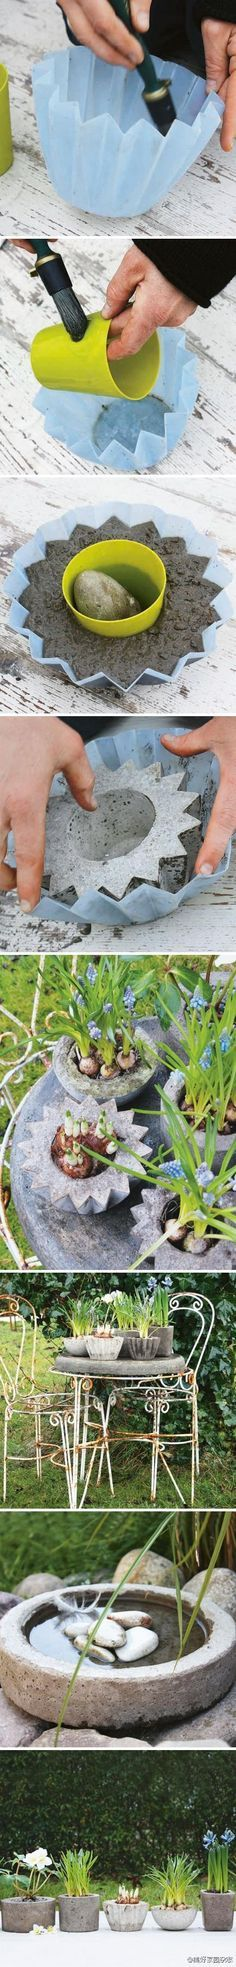 Make Your Own Concrete Planters: Concrete planters are made using a small container and a large container as molds. How far you push in the interior container will affect the thickness of the walls of your finished concrete planter. Once finished the foliage and bright blooms of your plants create vivid contrast with the textured gray container. .... excerpted from Concrete Garden Projects by Malin Nilsson and Camilla Arvidsson